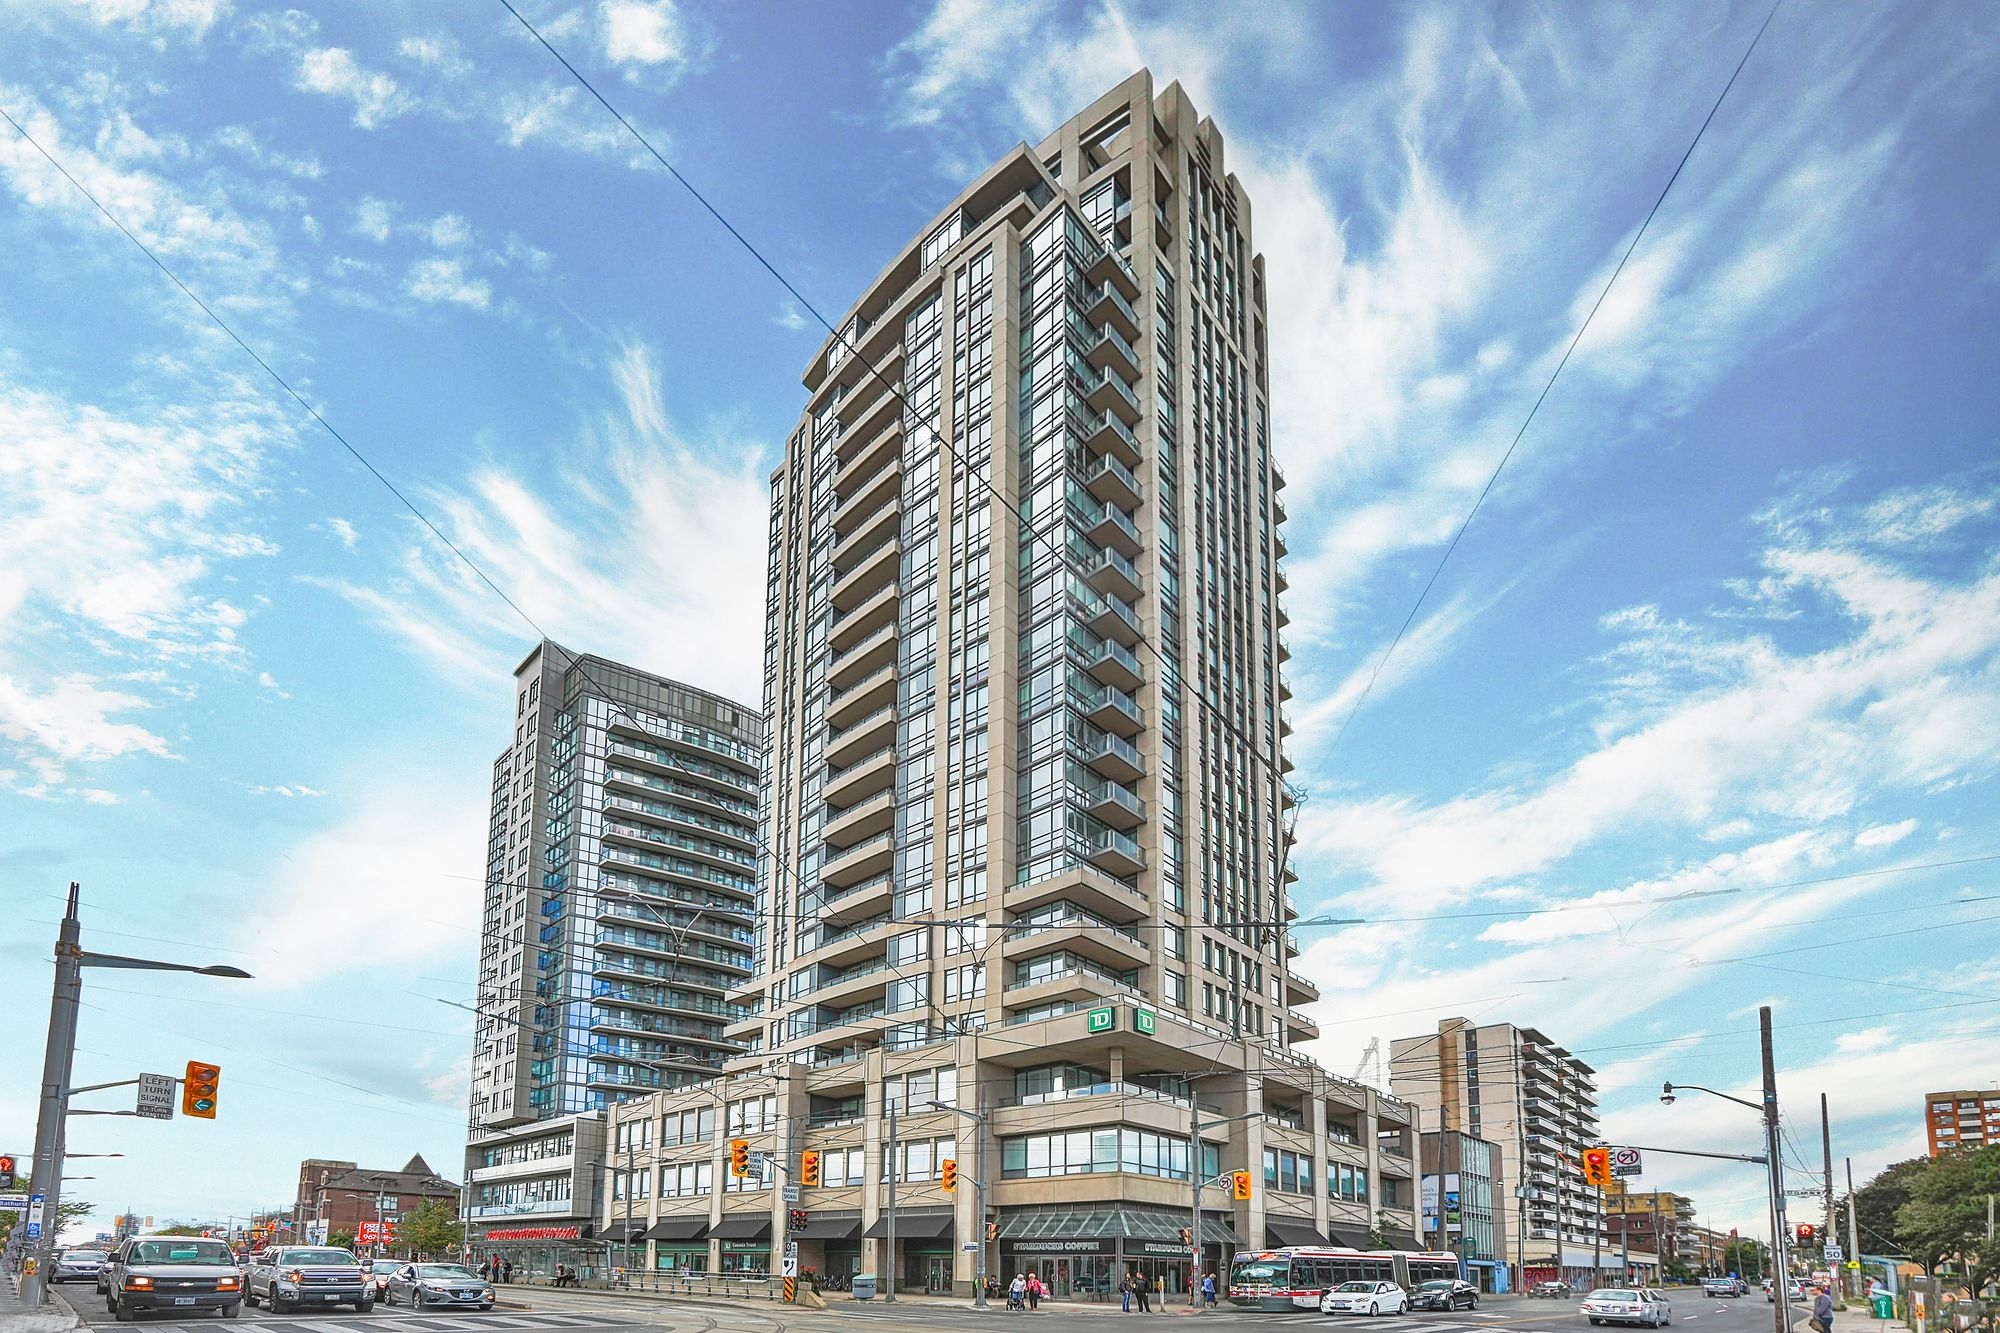 The Forest Hill at 500 St Clair Ave W. This condo is located in  Midtown, Toronto - image #1 of 7 by Strata.ca